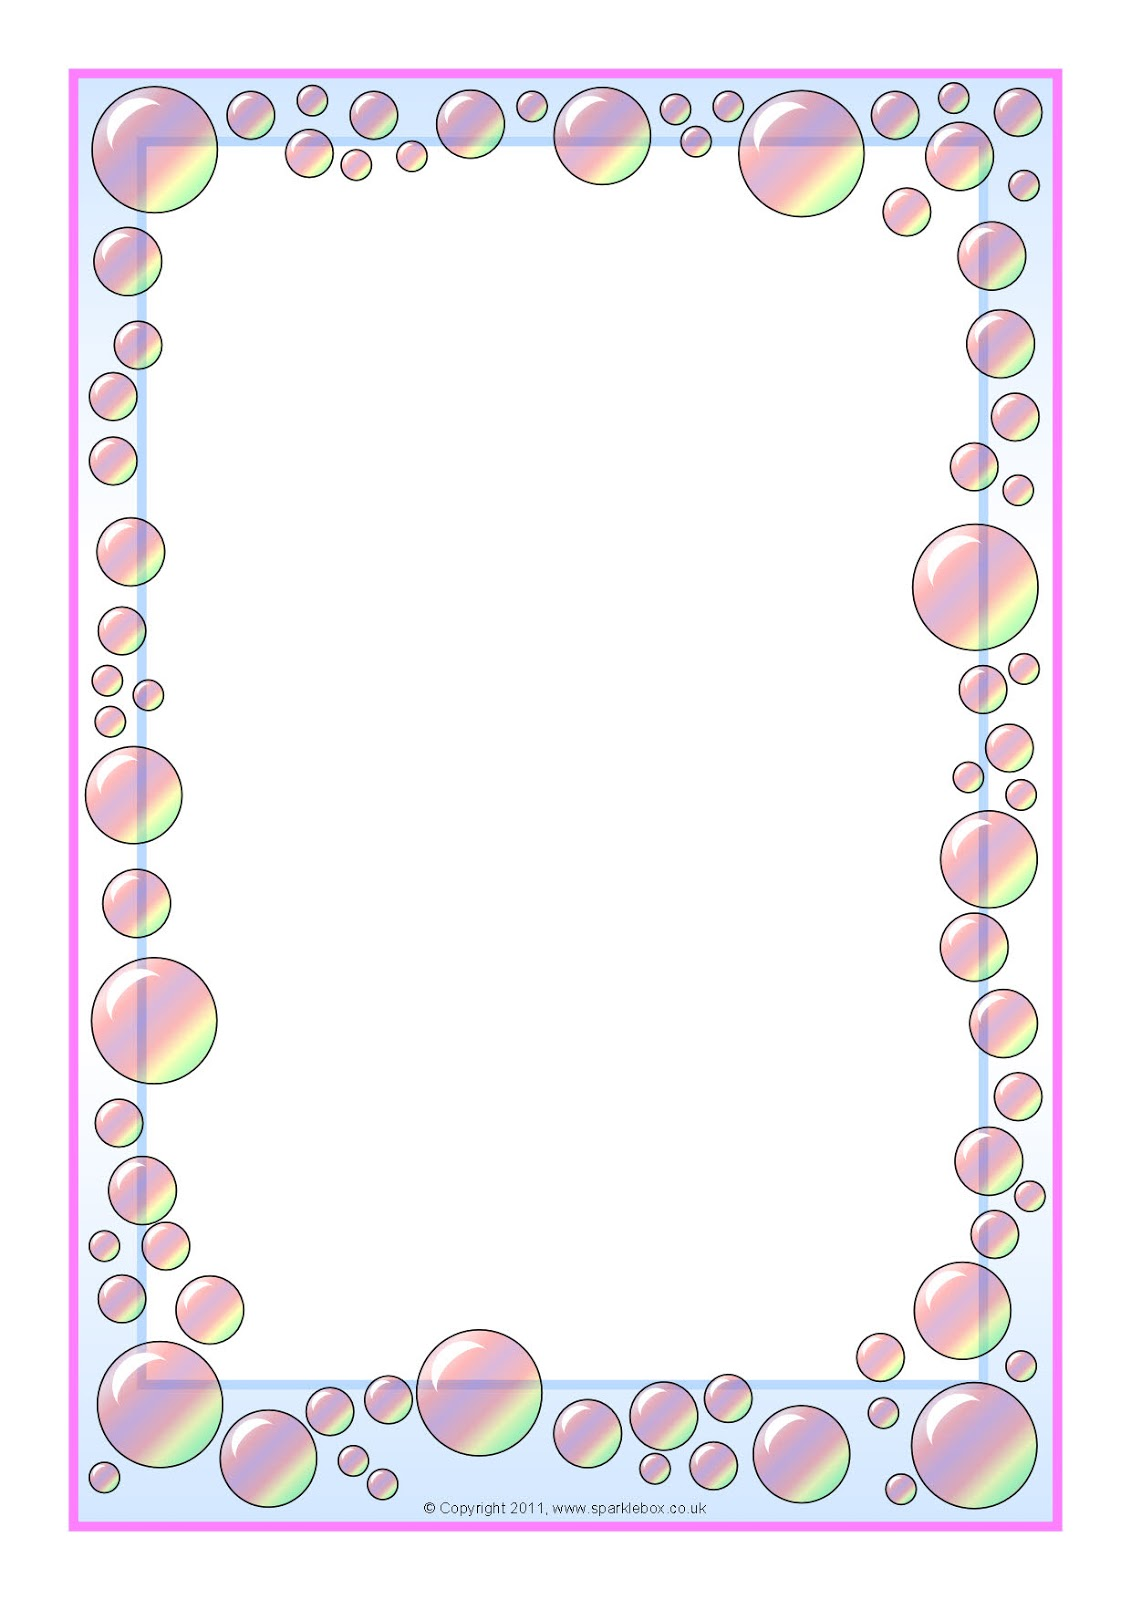 14 simple border designs for projects images simple for Simple designs on paper